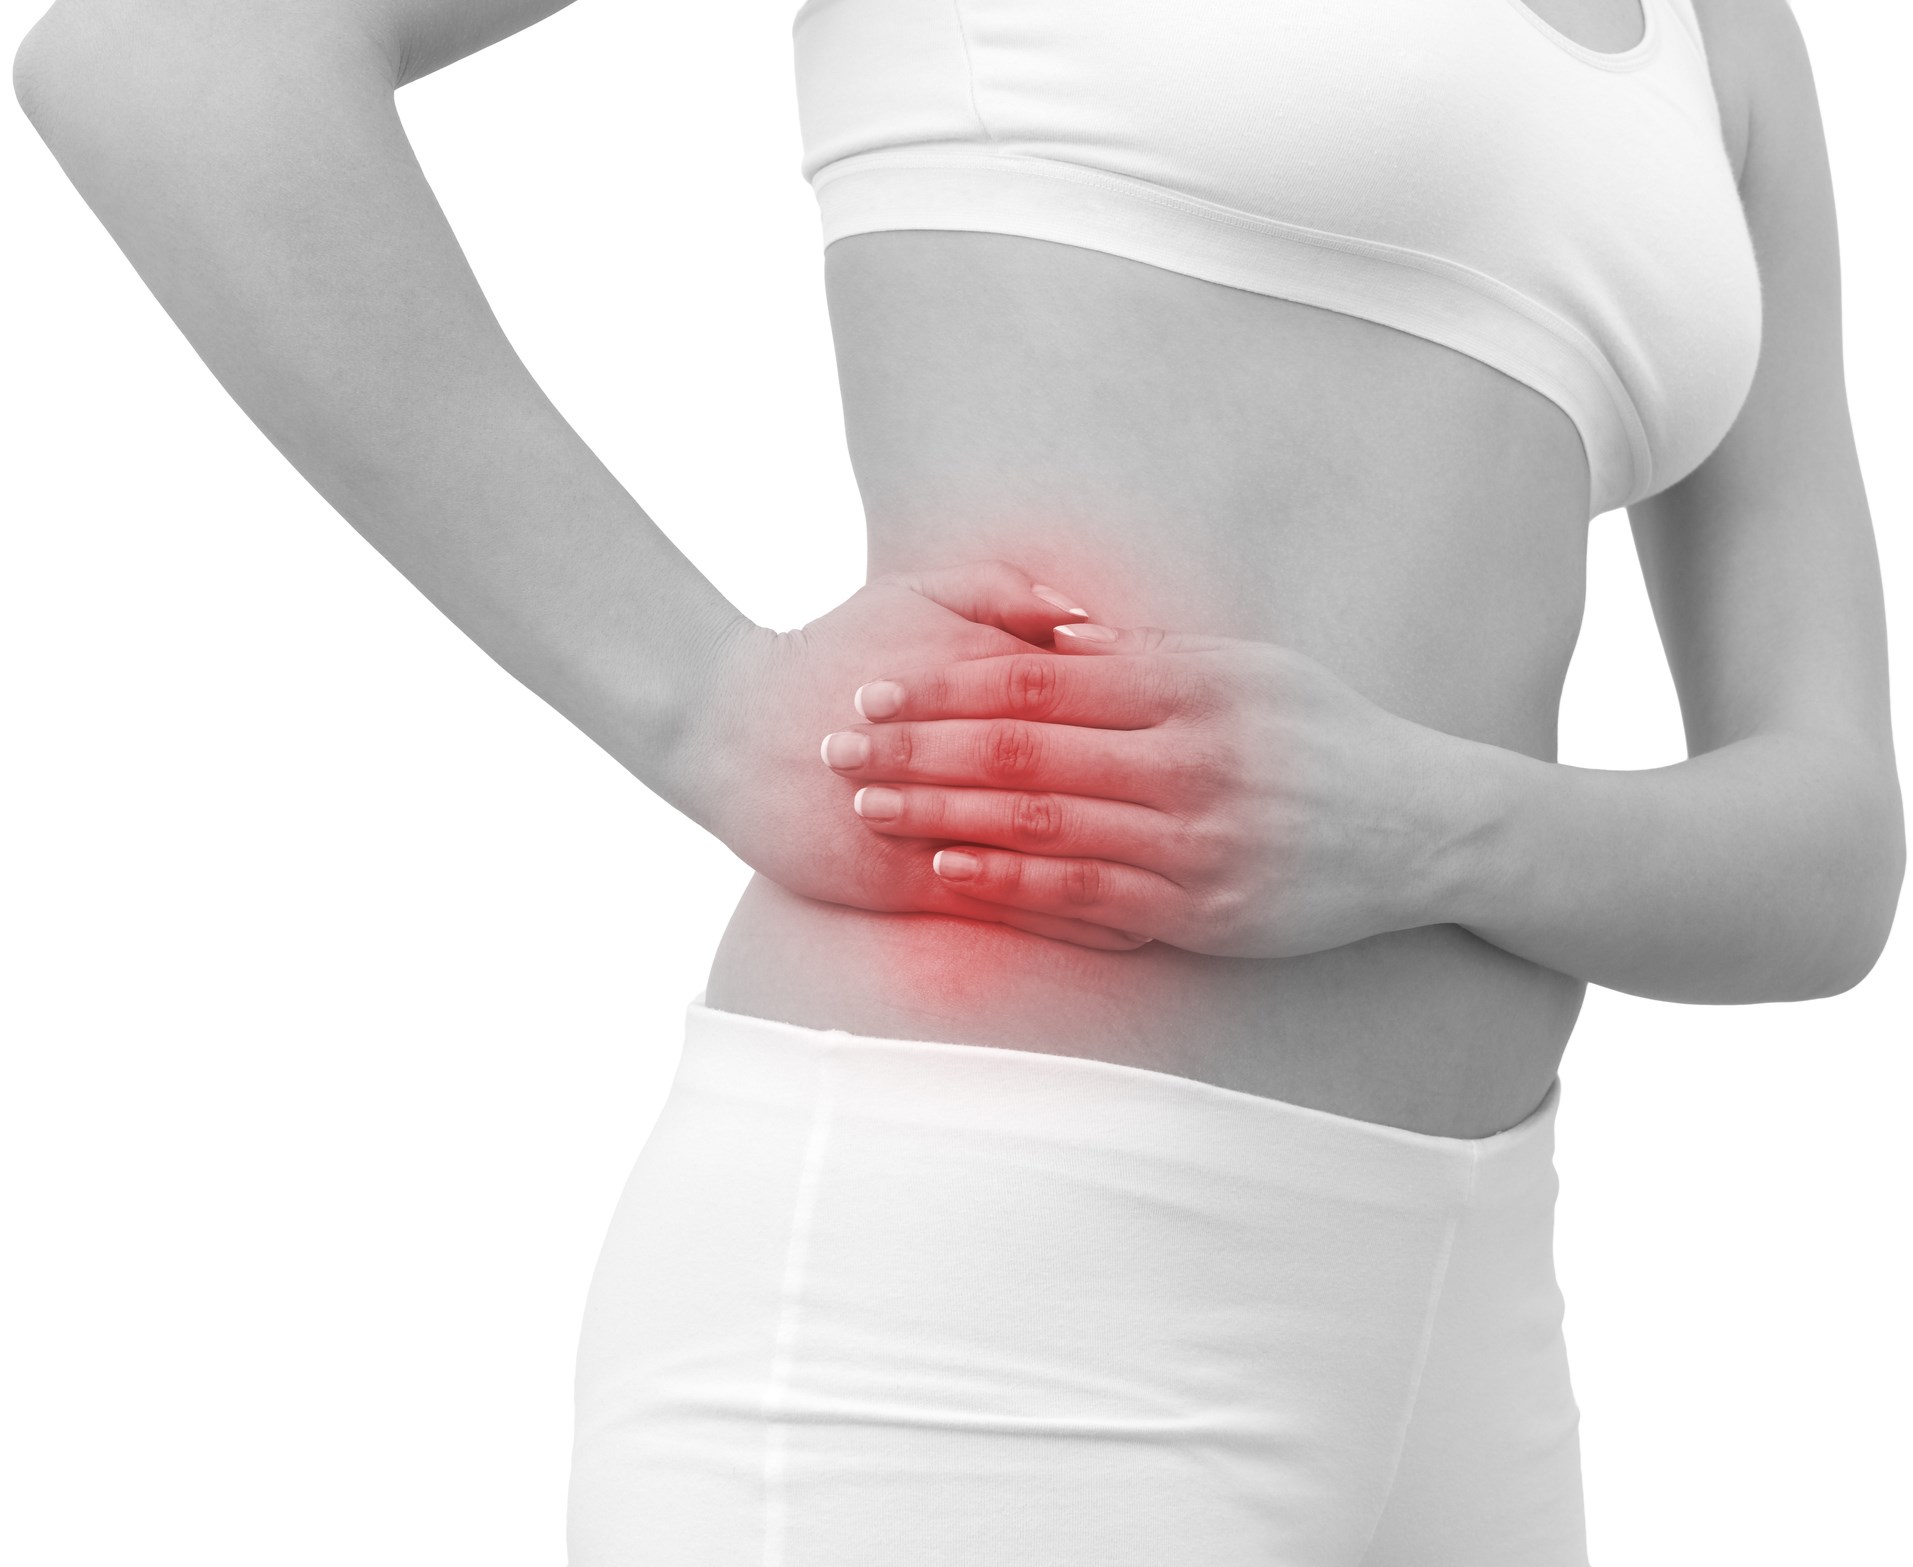 Case Study: Patient Presenting With Long-Term Right-Sided Lower Abdominal Pain